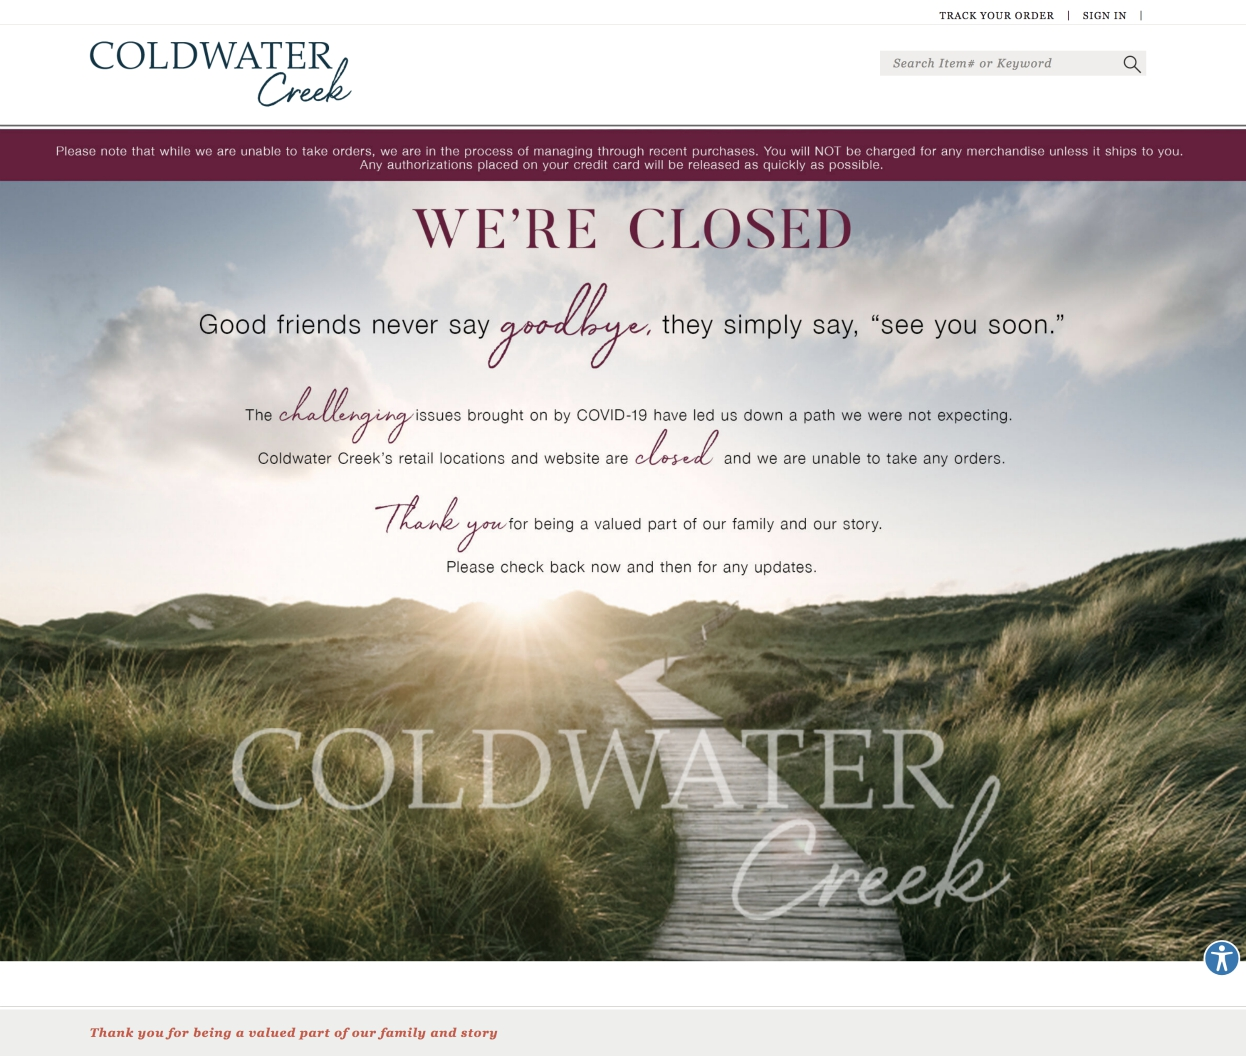 Women's specialty apparel chain Coldwater Creek has shut down operations, but leaves the door open to a possible restart down the road.